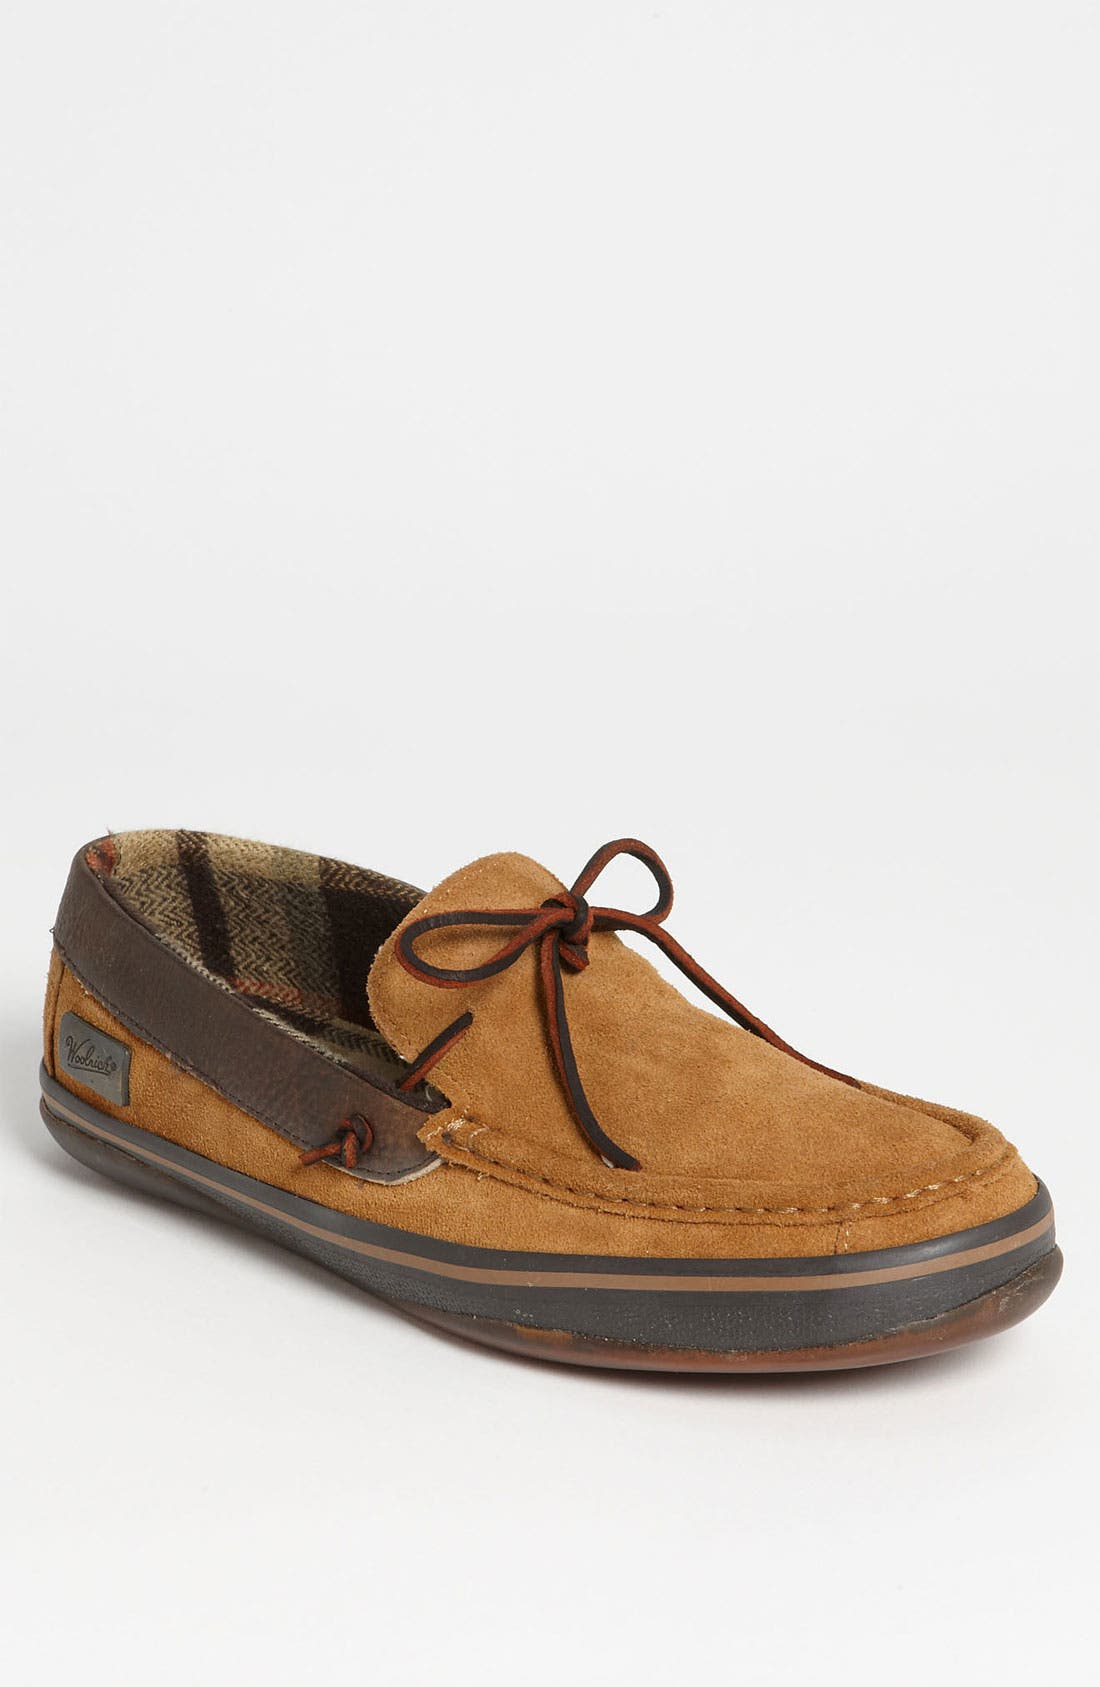 Main Image - Woolrich 'Weston' Slipper (Online Only)